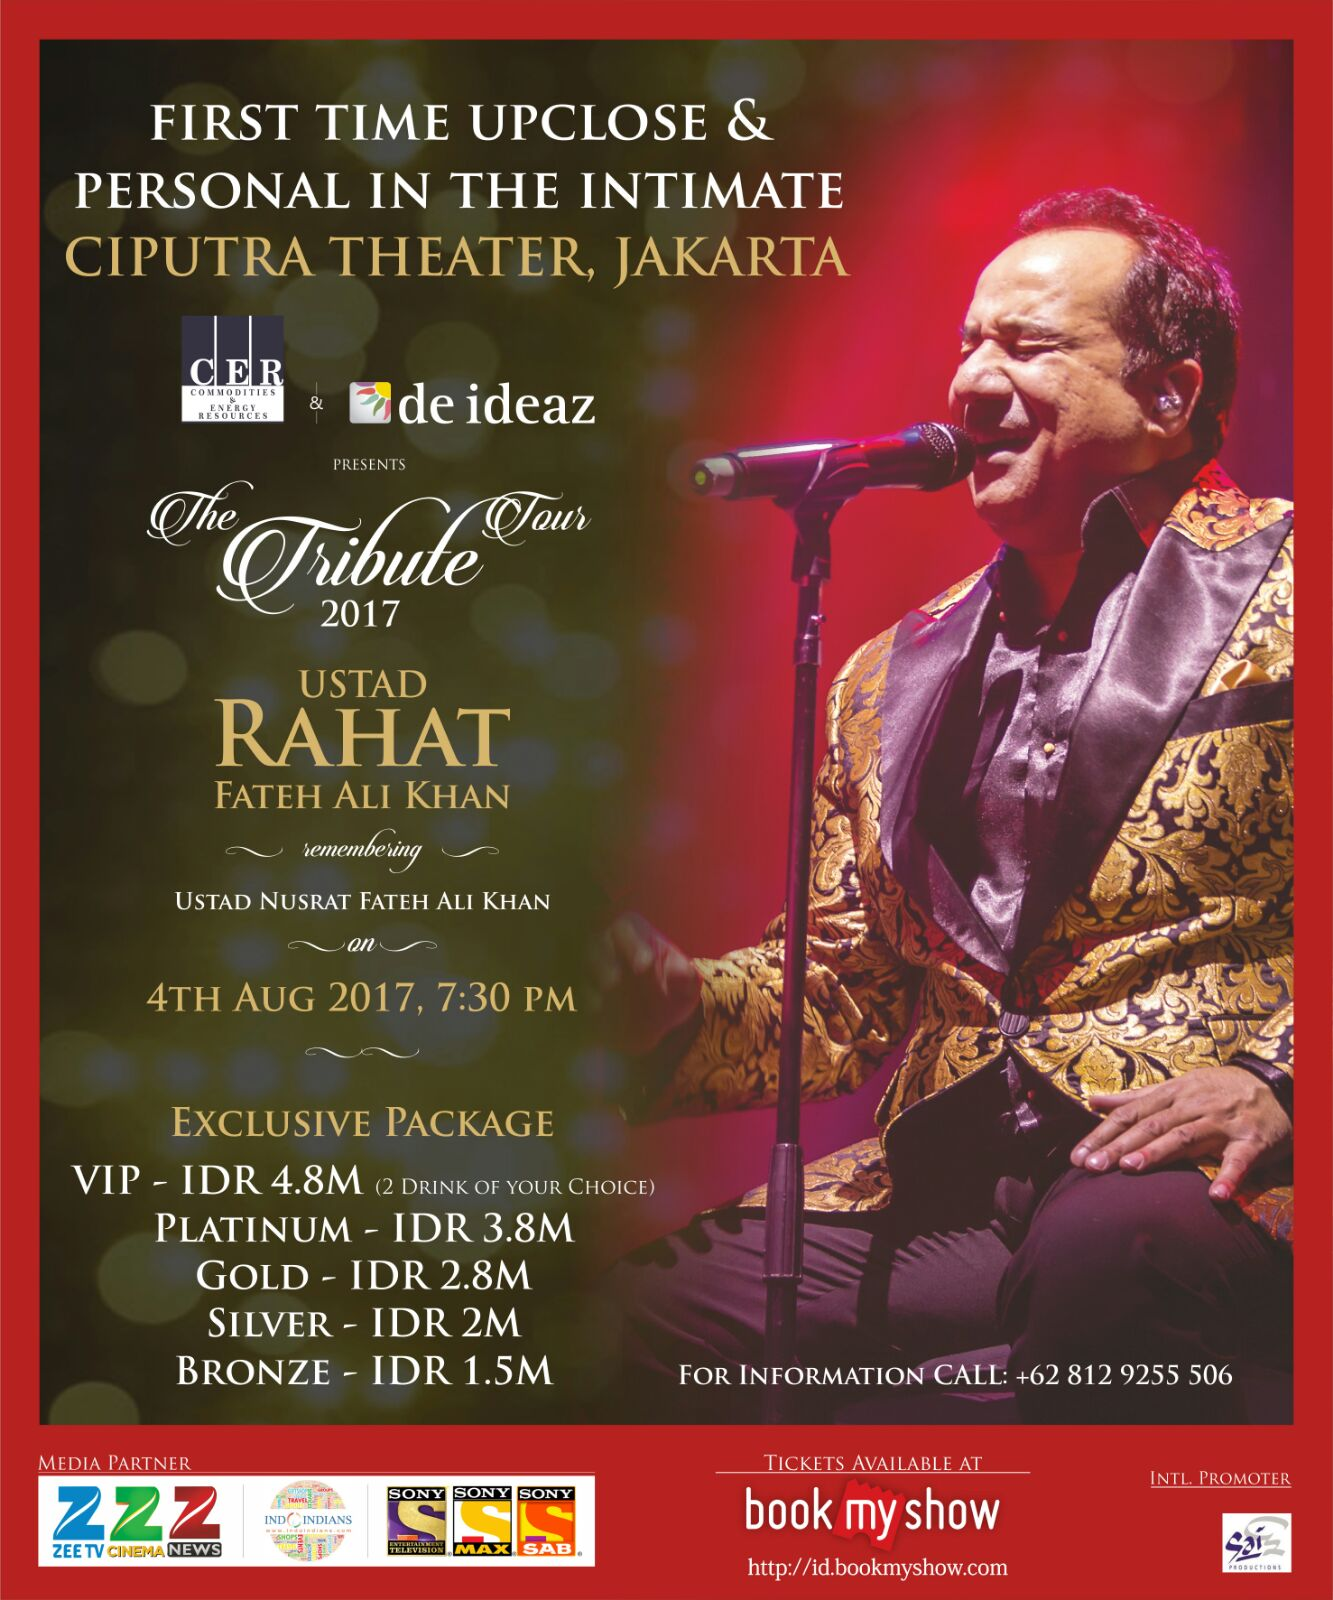 The Tribute Concert 2017 by Ustad Rahat Fateh Ali Khan on 4 Aug at Ciputra Auditorium